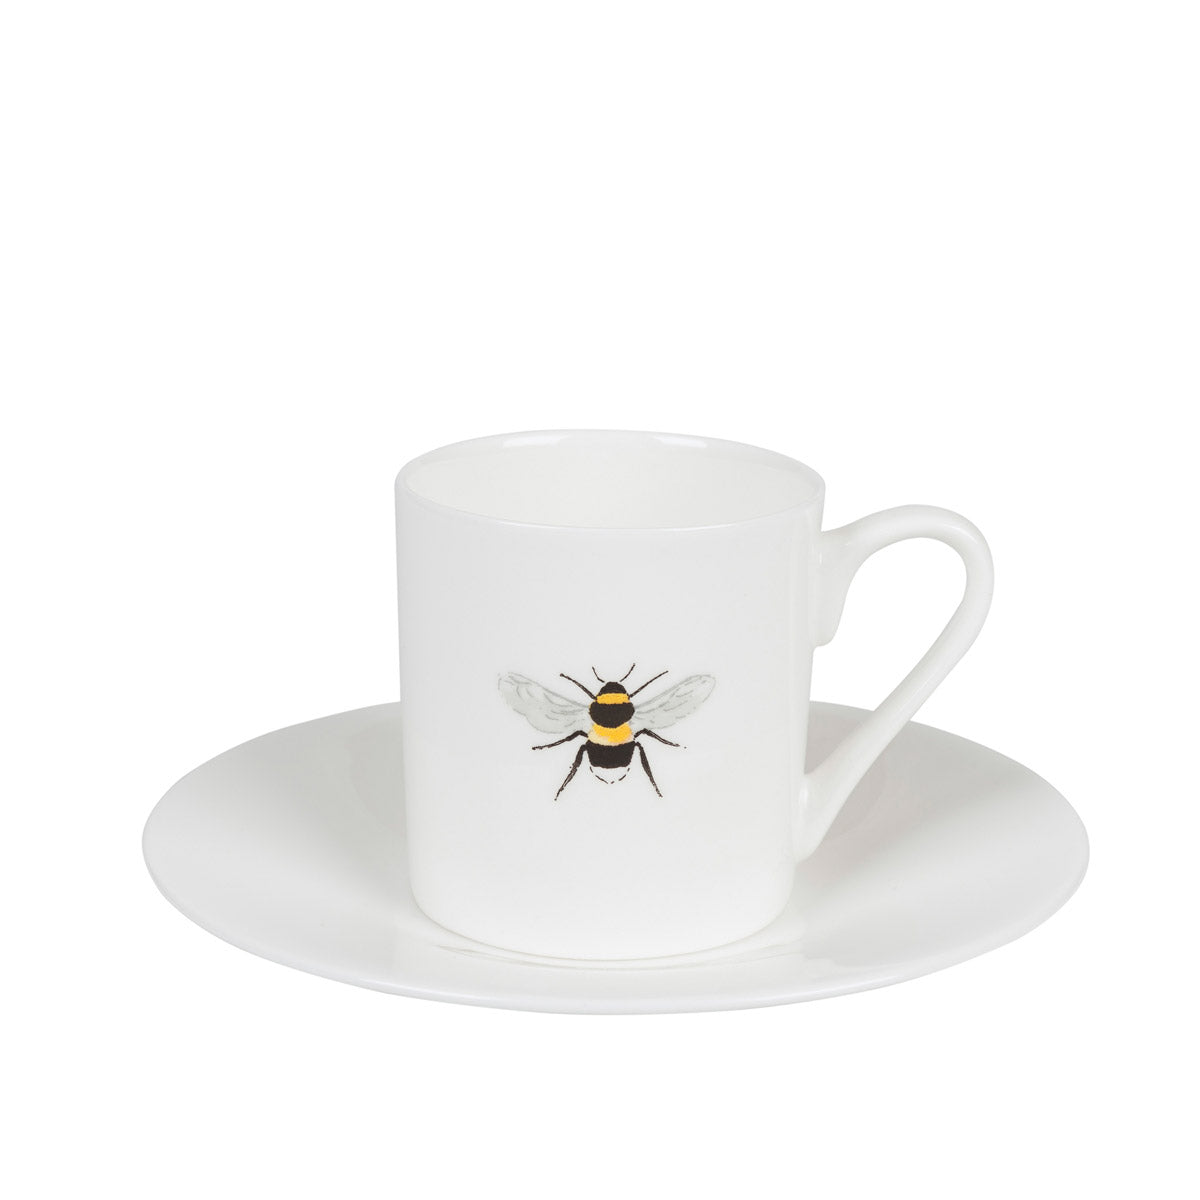 Bees Espresso Cup & Saucer